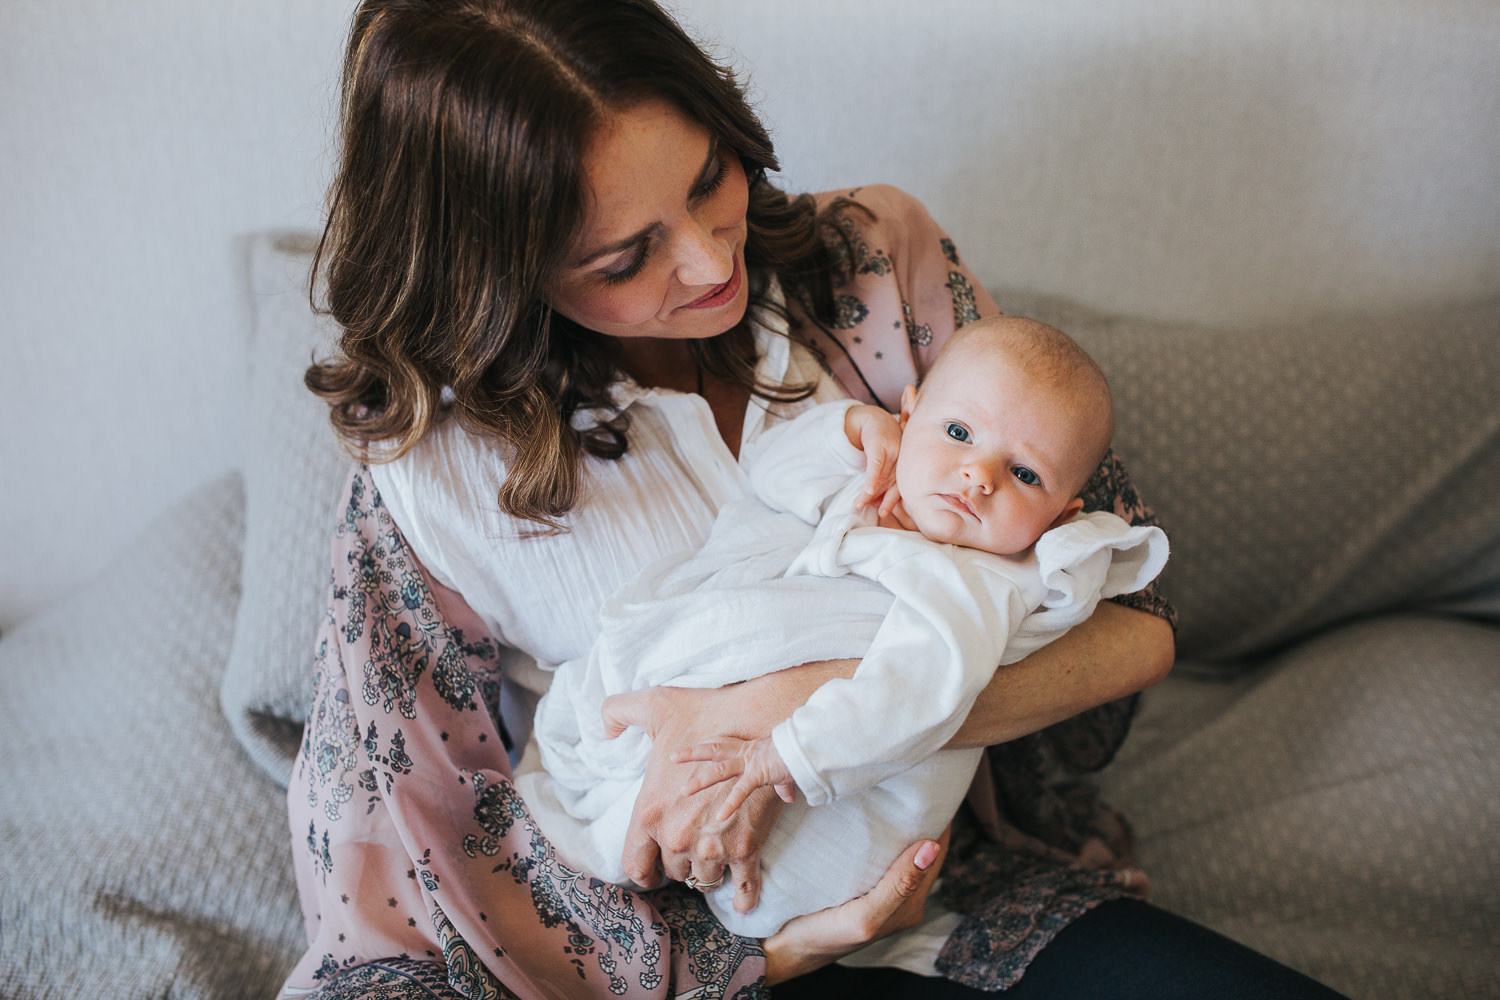 new mom sitting on bed holding 2 month old baby girl, who is looking at camera - Stouffville In-Home Photos